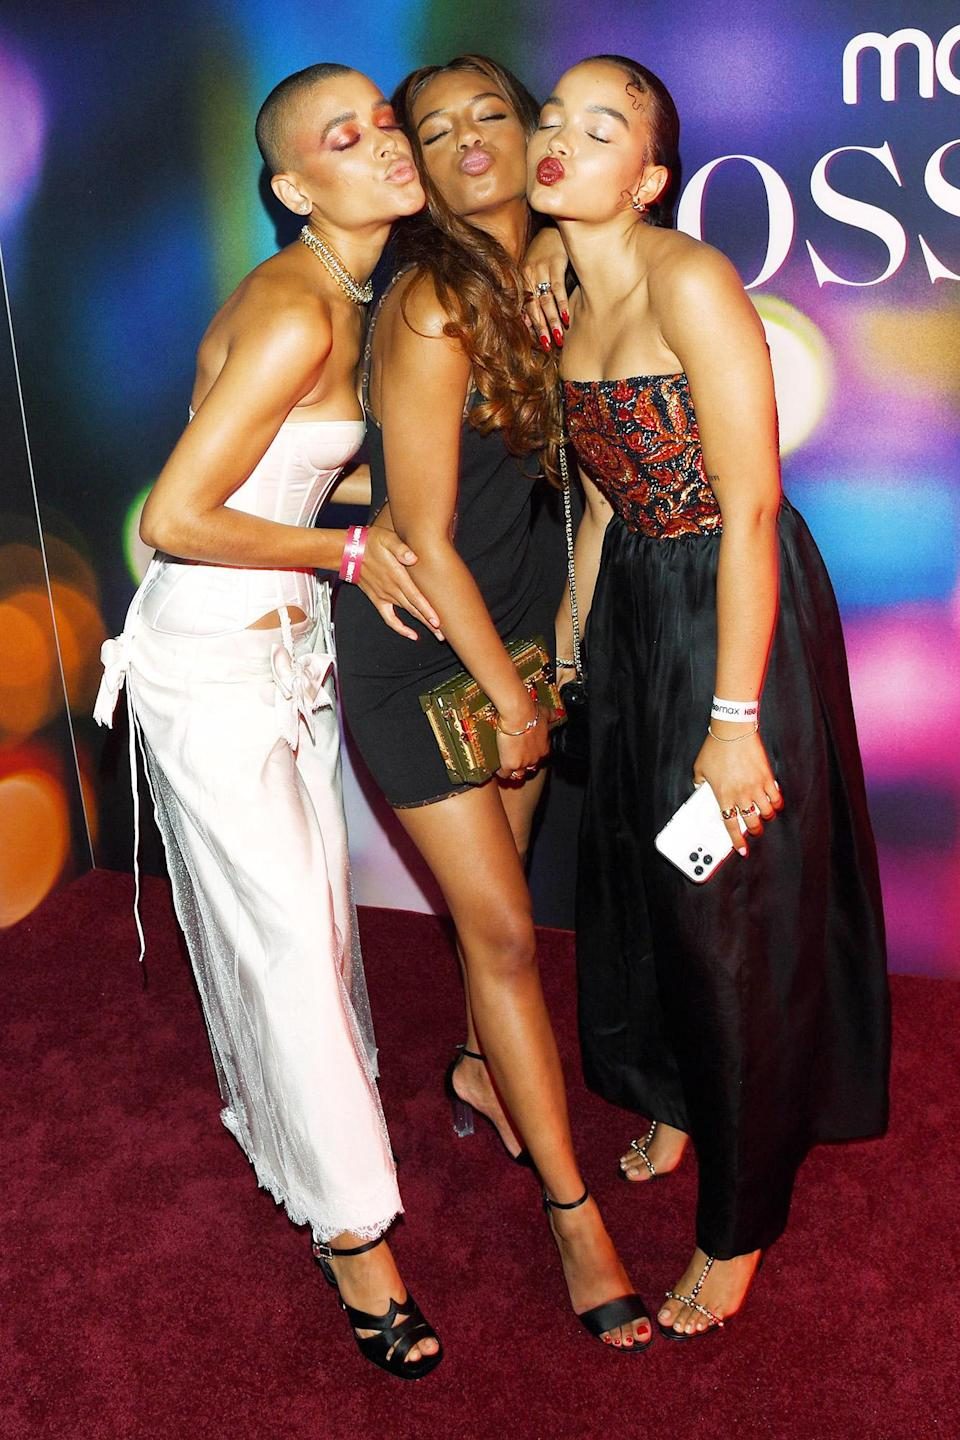 <p>Jordan Alexander, Savannah Smith and Whitney Peak share a smooch ahead of the N.Y.C. premiere of Warner Bros. Television's <em>Gossip Girl</em>, which debuts on July 8 on HBO Max.</p>